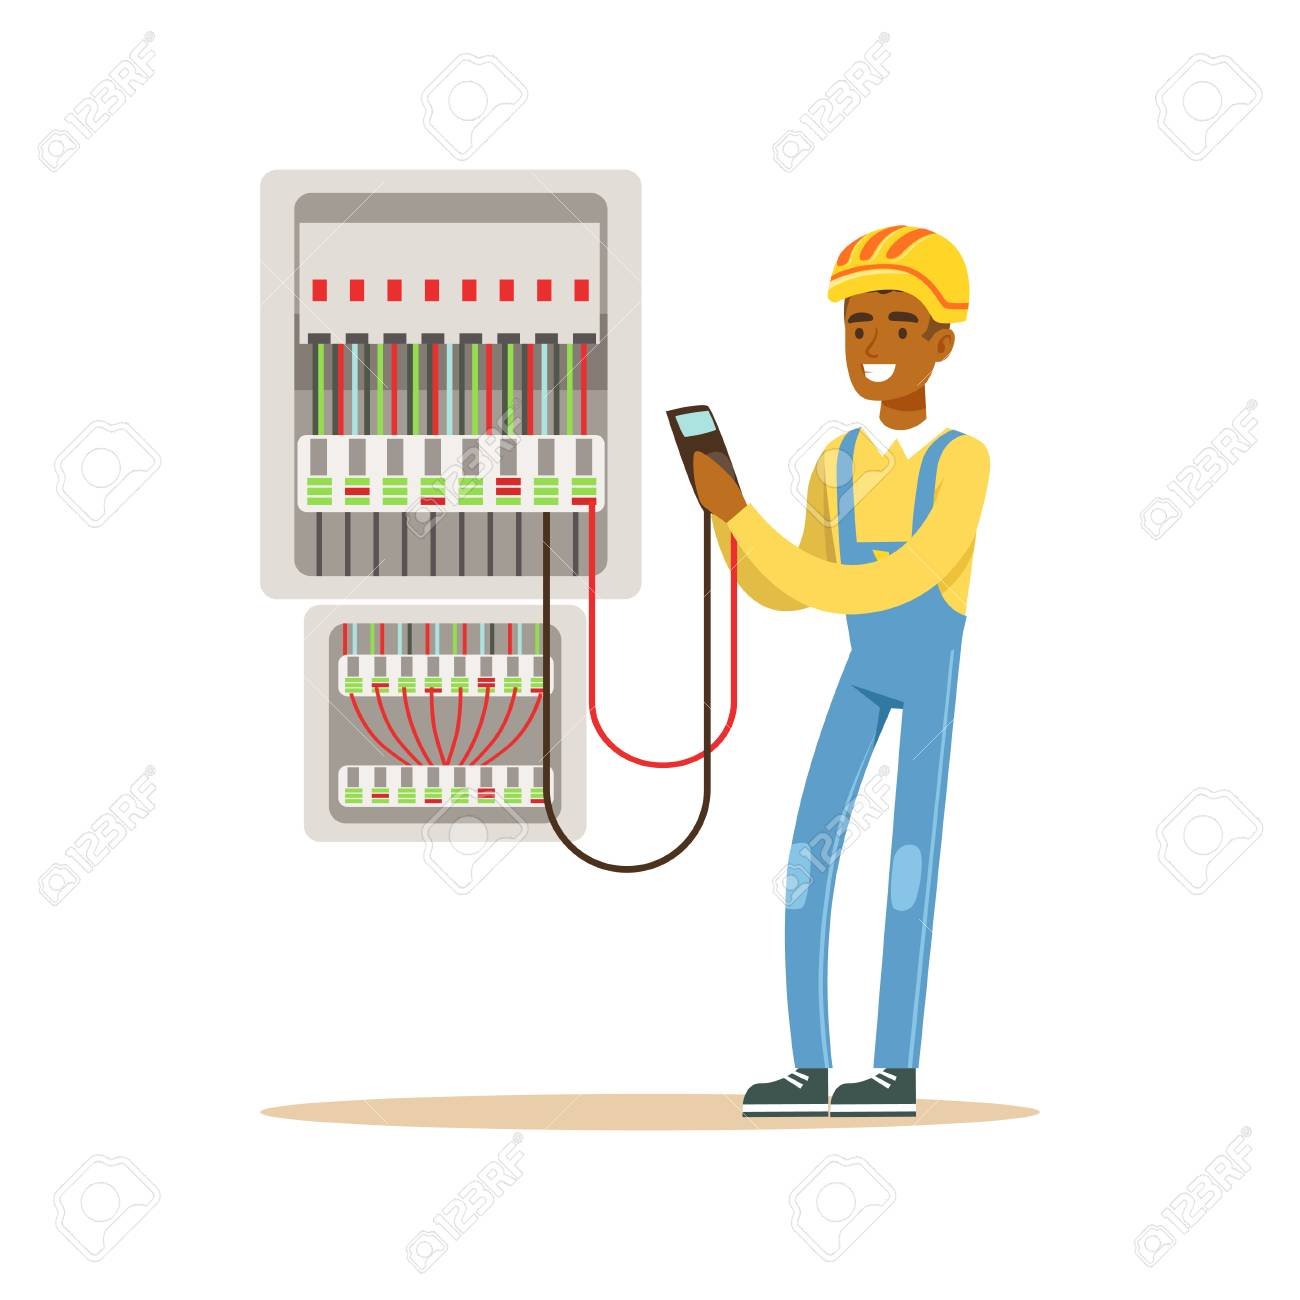 electrician engineer measuring the voltage output in fuse box element box cartoon electrician engineer measuring the voltage output in fuse box, electric man performing electrical works vector